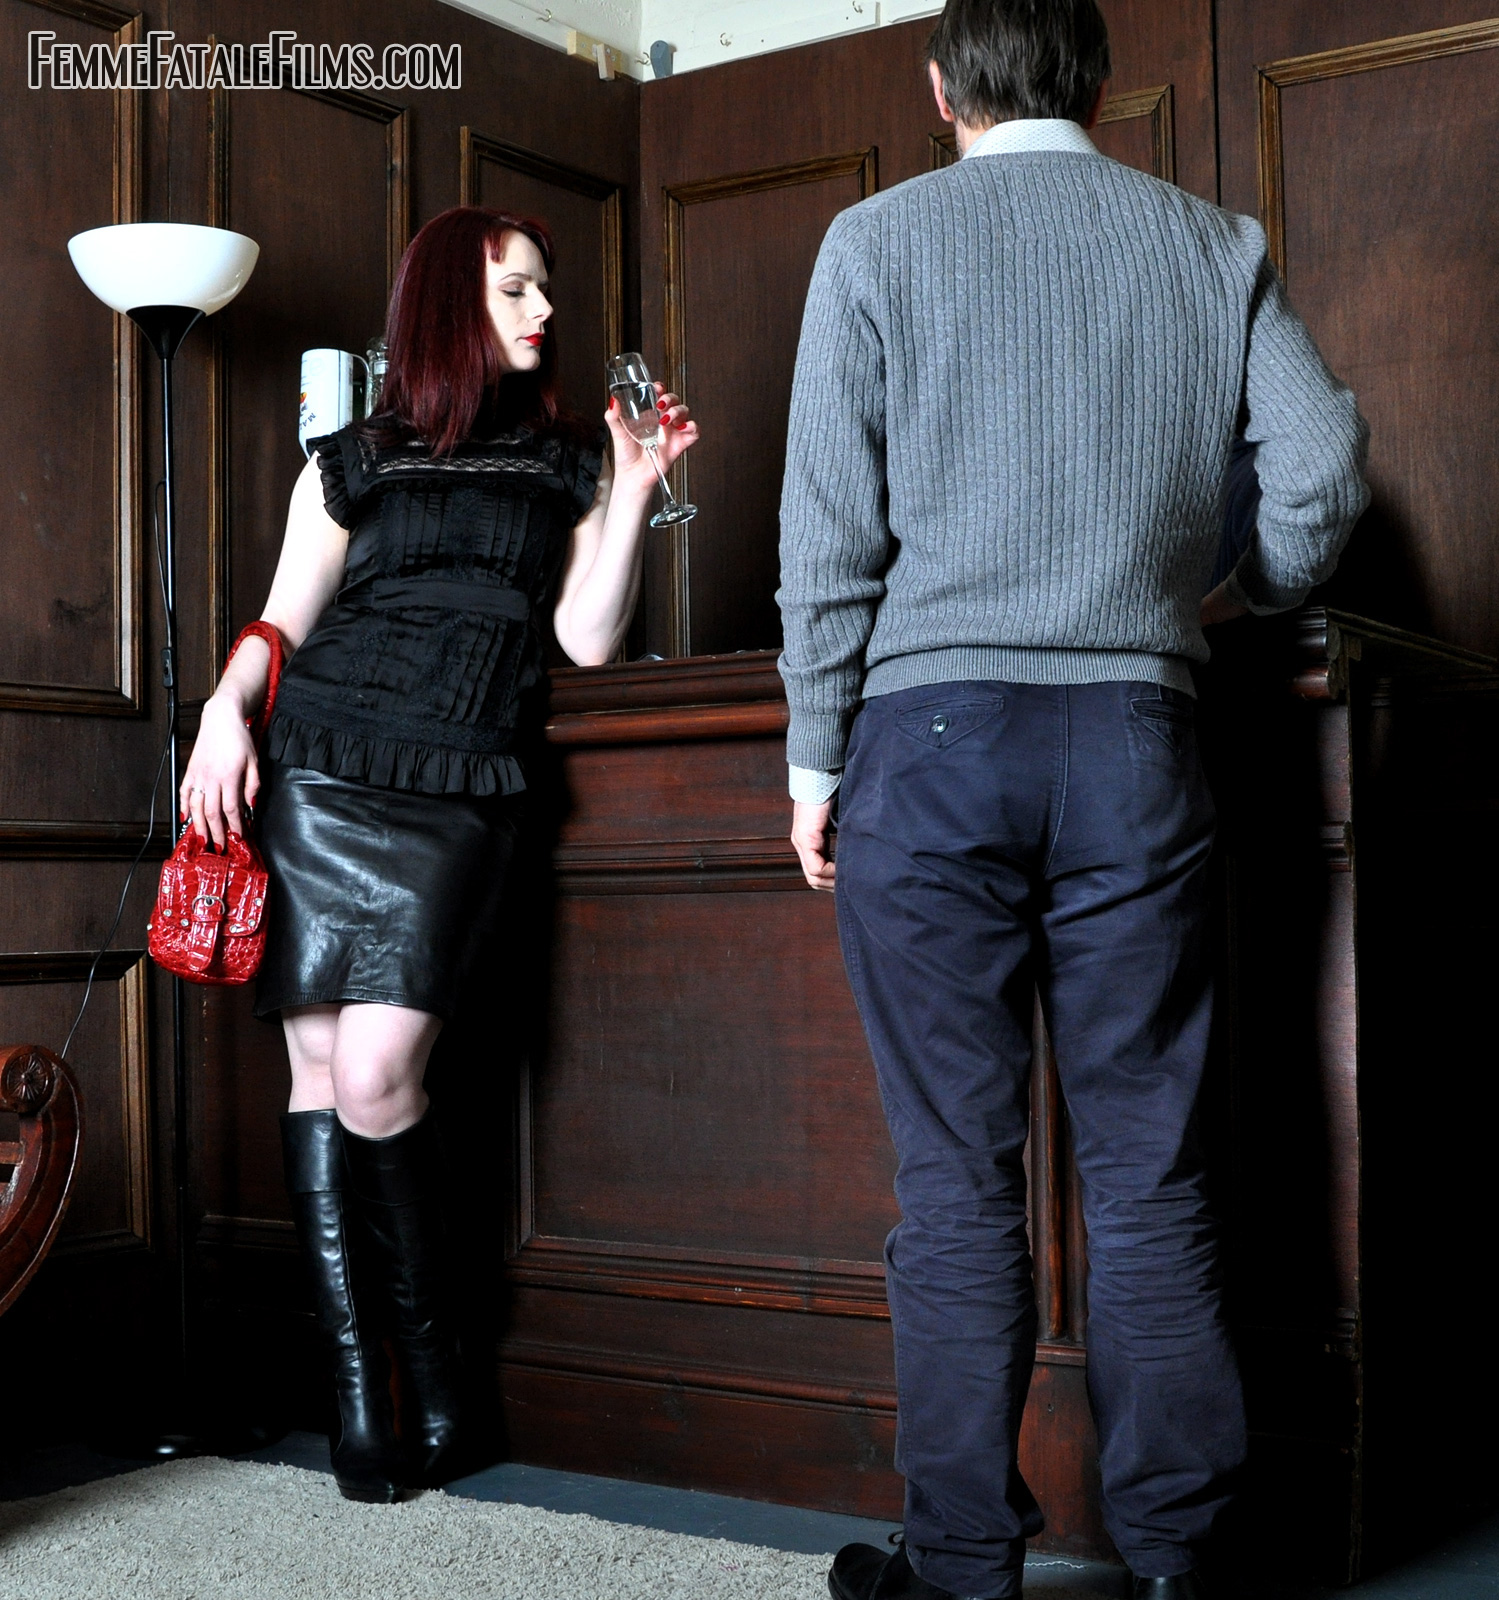 Mistress threatens to tell wife love potion changes her mind - 5 2